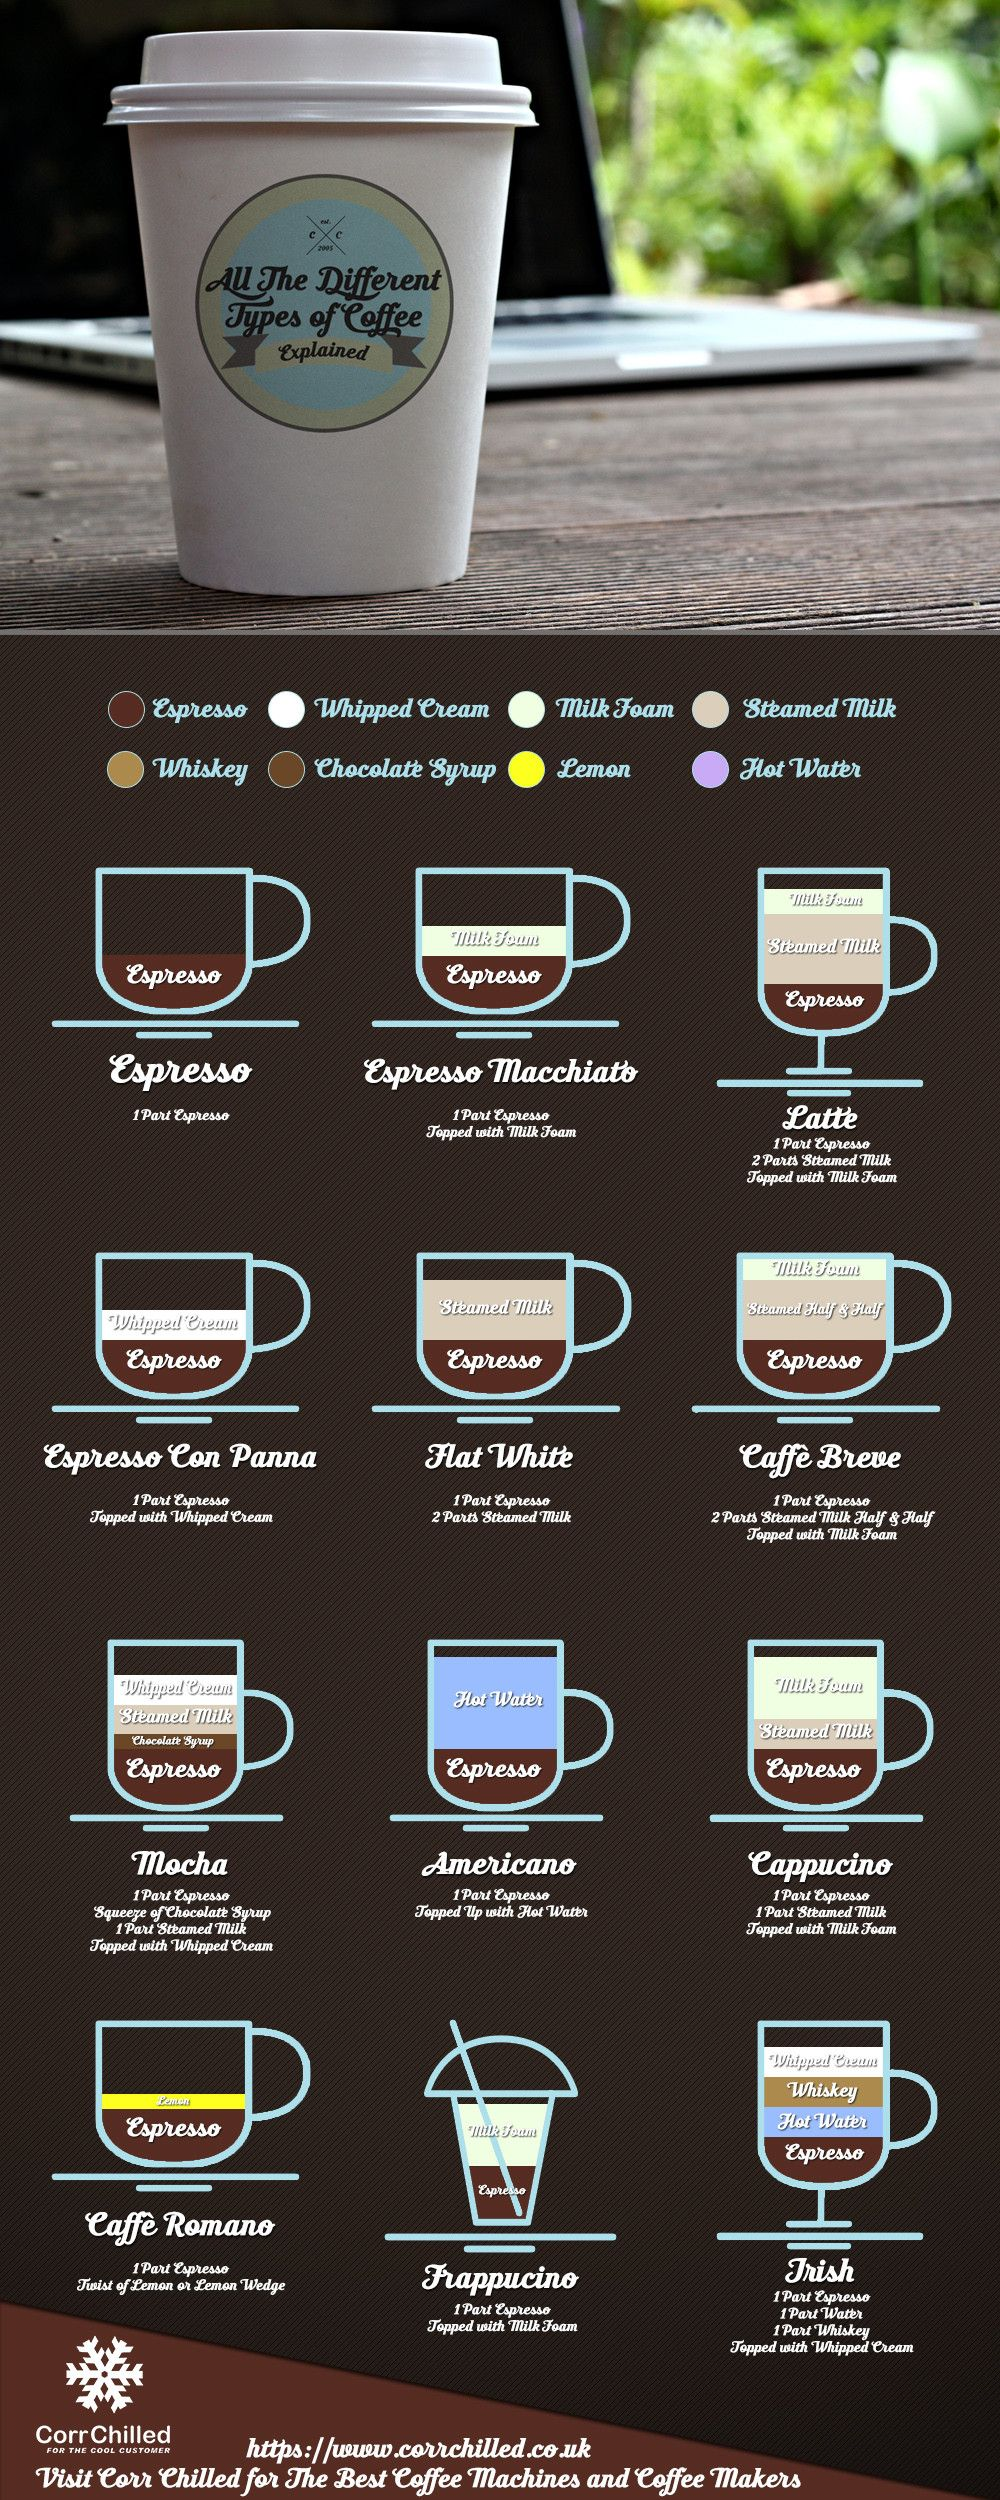 All The Different Types Of Coffee Explained In A Nice Infographic Coffee Type Different Types Of Coffee Coffee Infographic